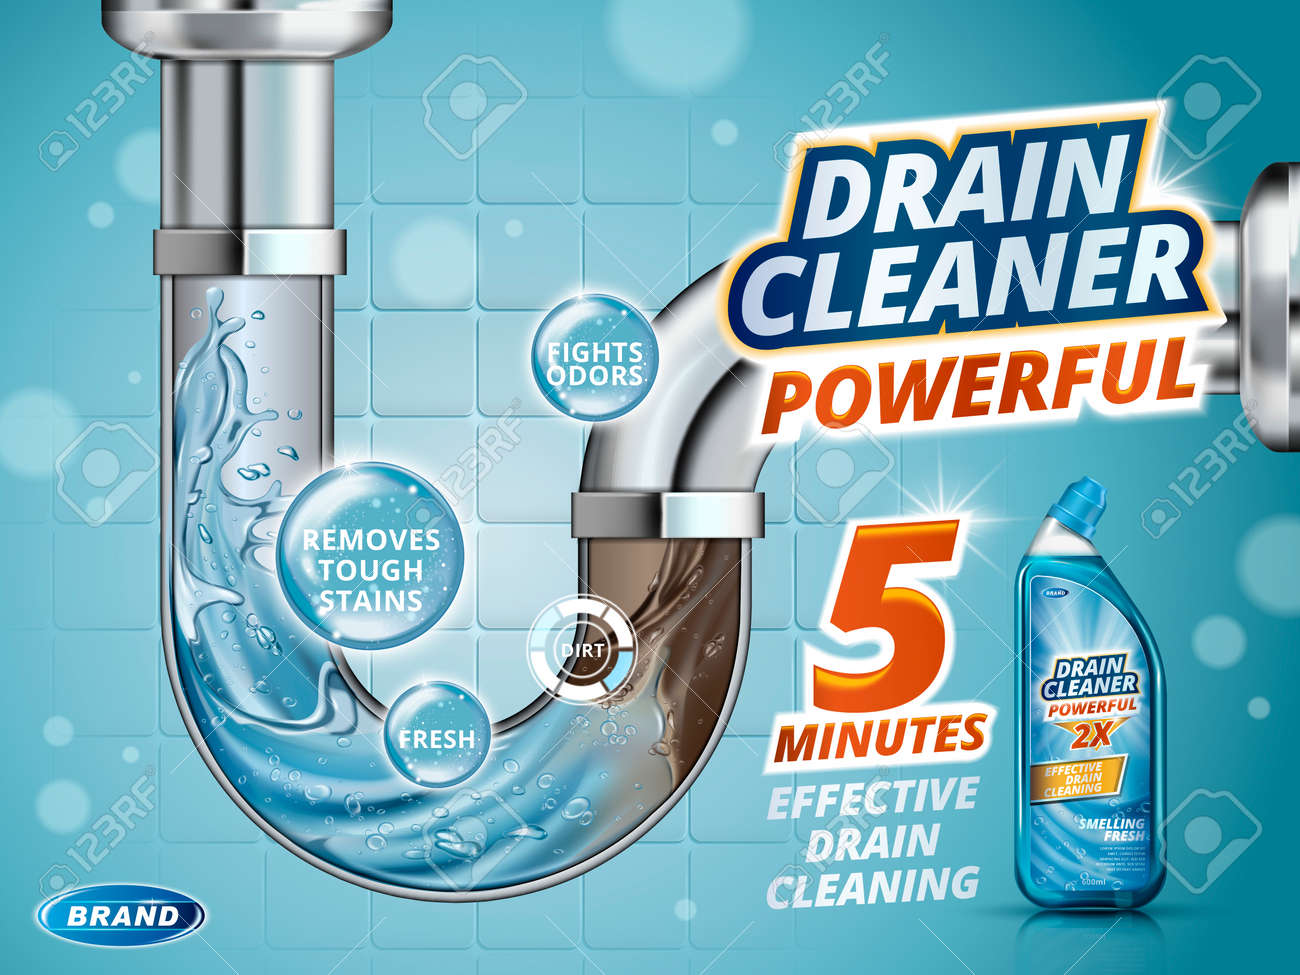 Drain cleaner ads, before and after effect in drain pipe, realistic detergent bottle isolated on blue background in 3d illustration - 71507873